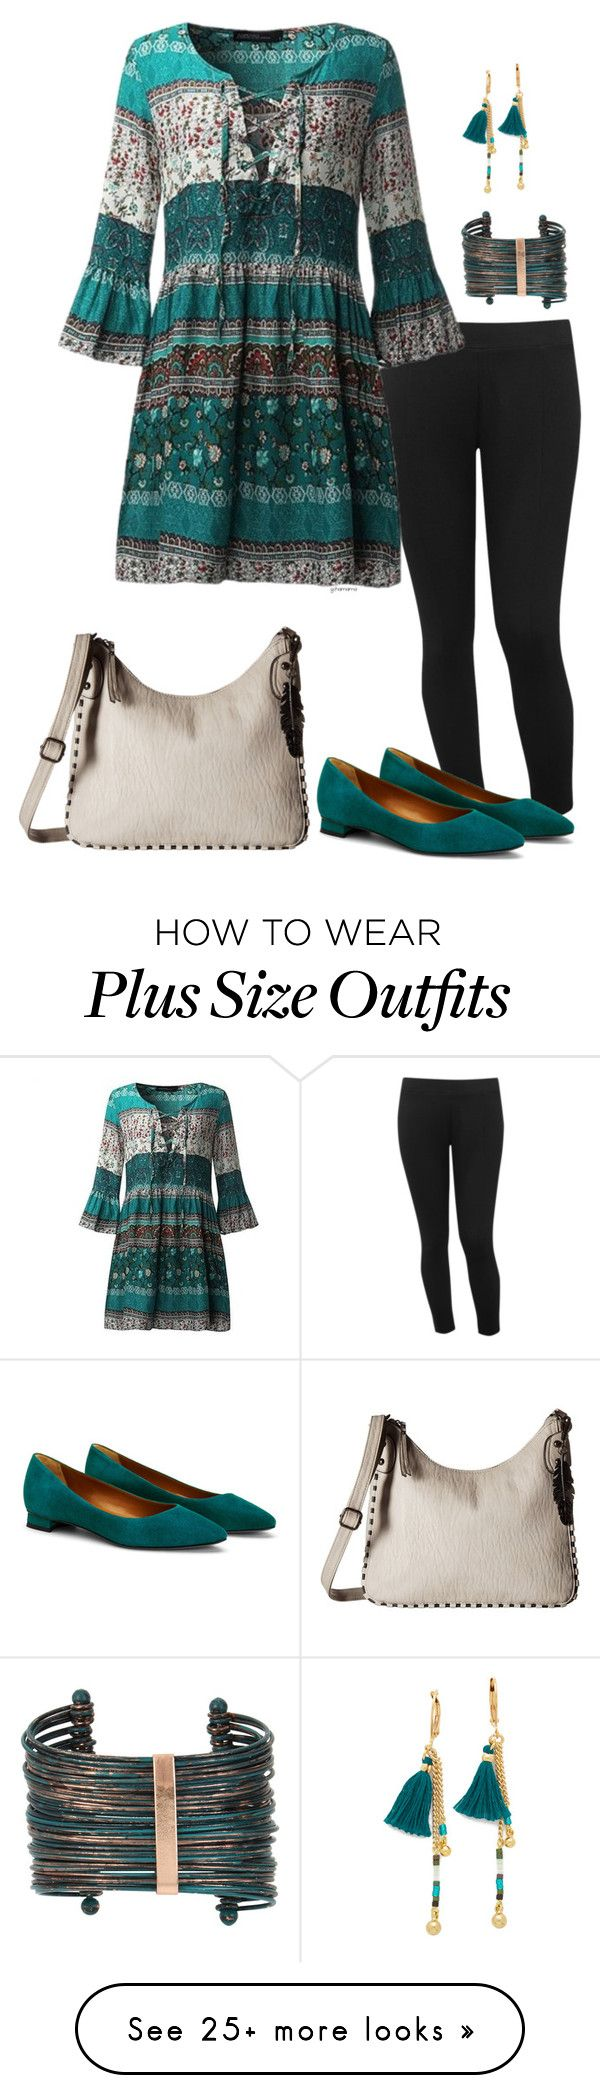 """Nothing fancy- plus size"" by gchamama on Polyvore featuring M&Co, Aquatalia by Marvin K., Jessica Simpson, Shashi and Boutique+"